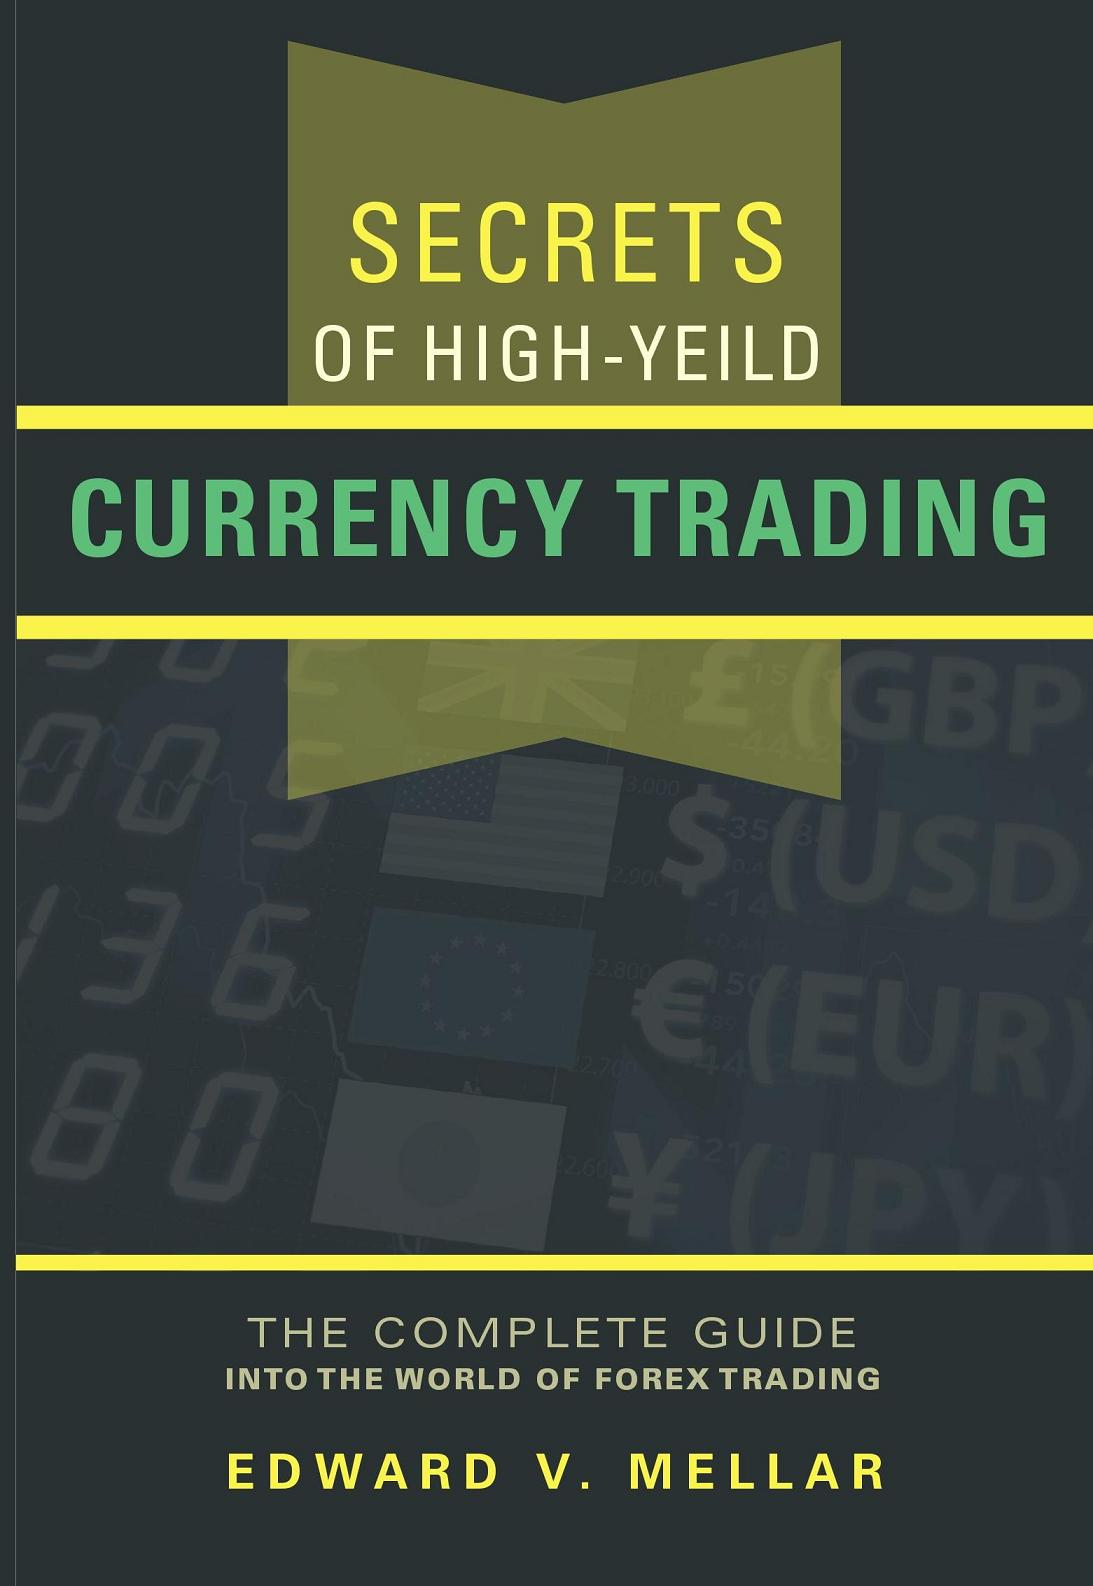 Books on forex